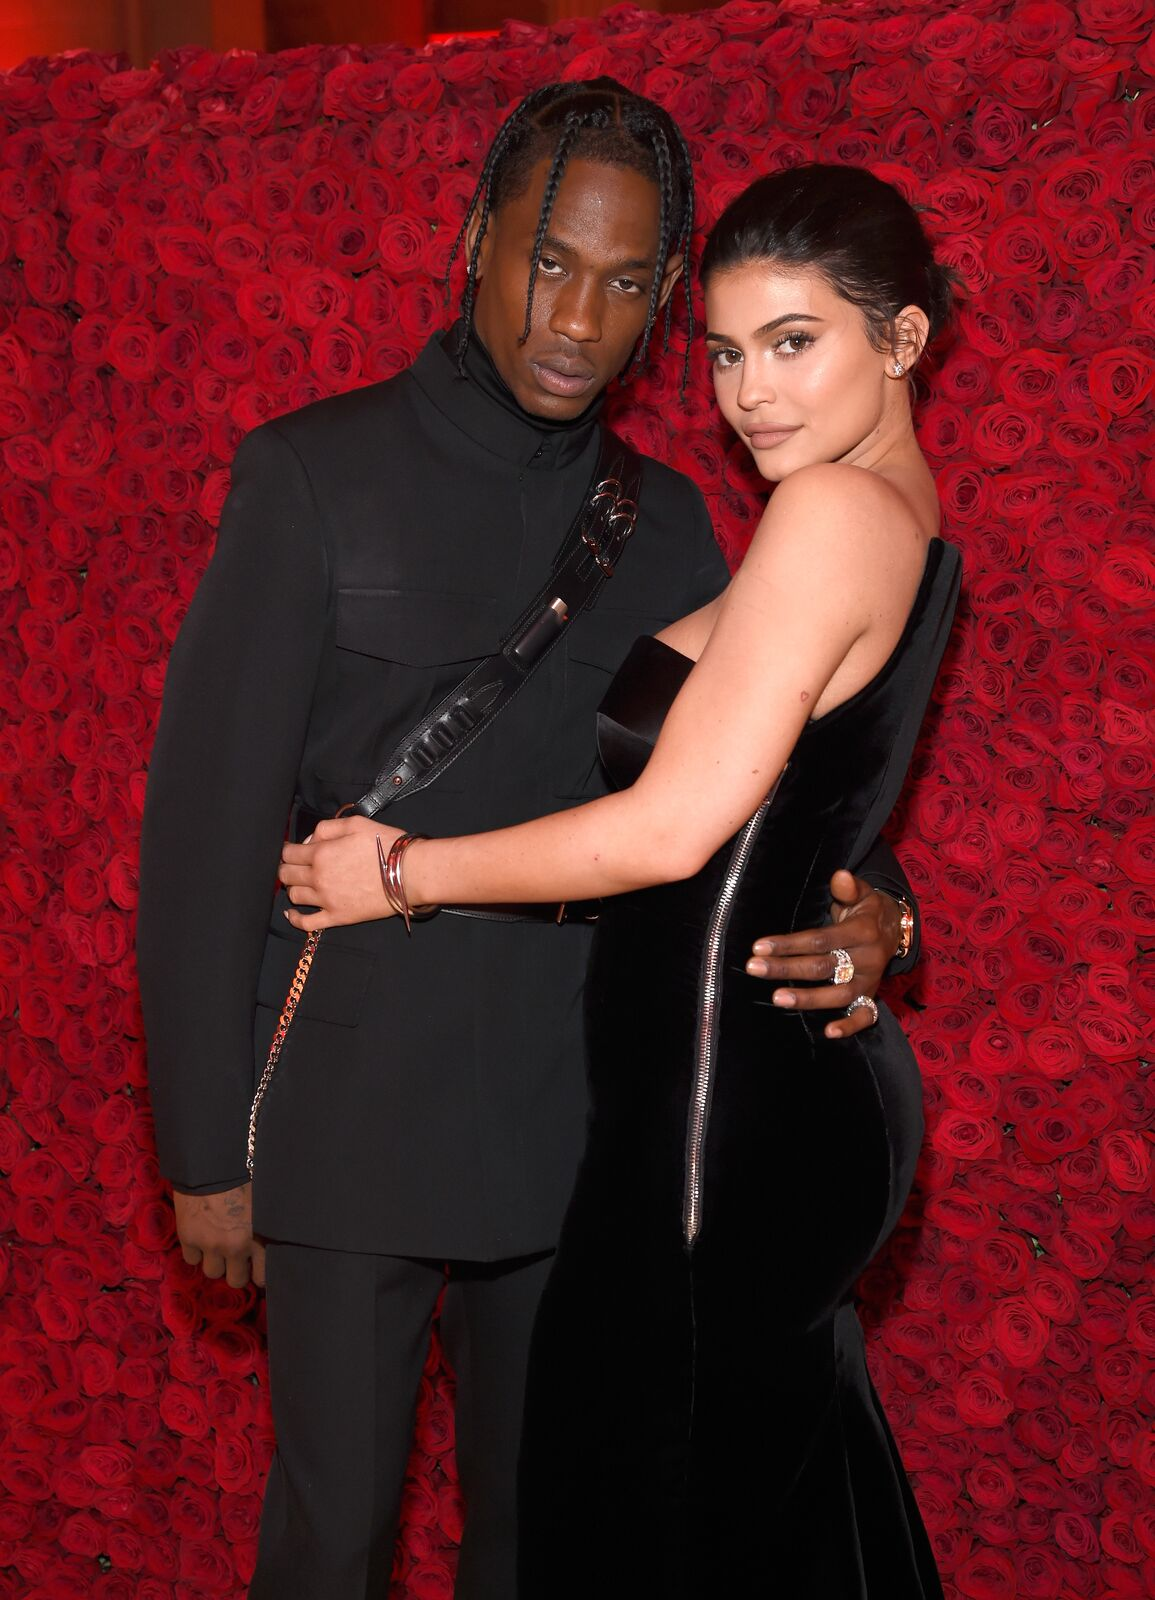 Travis Scott and Kylie Jenner at the Heavenly Bodies: Fashion & The Catholic Imagination Costume Institute Gala at The Metropolitan Museum of Art on May 7, 2018. | Source: Getty Images